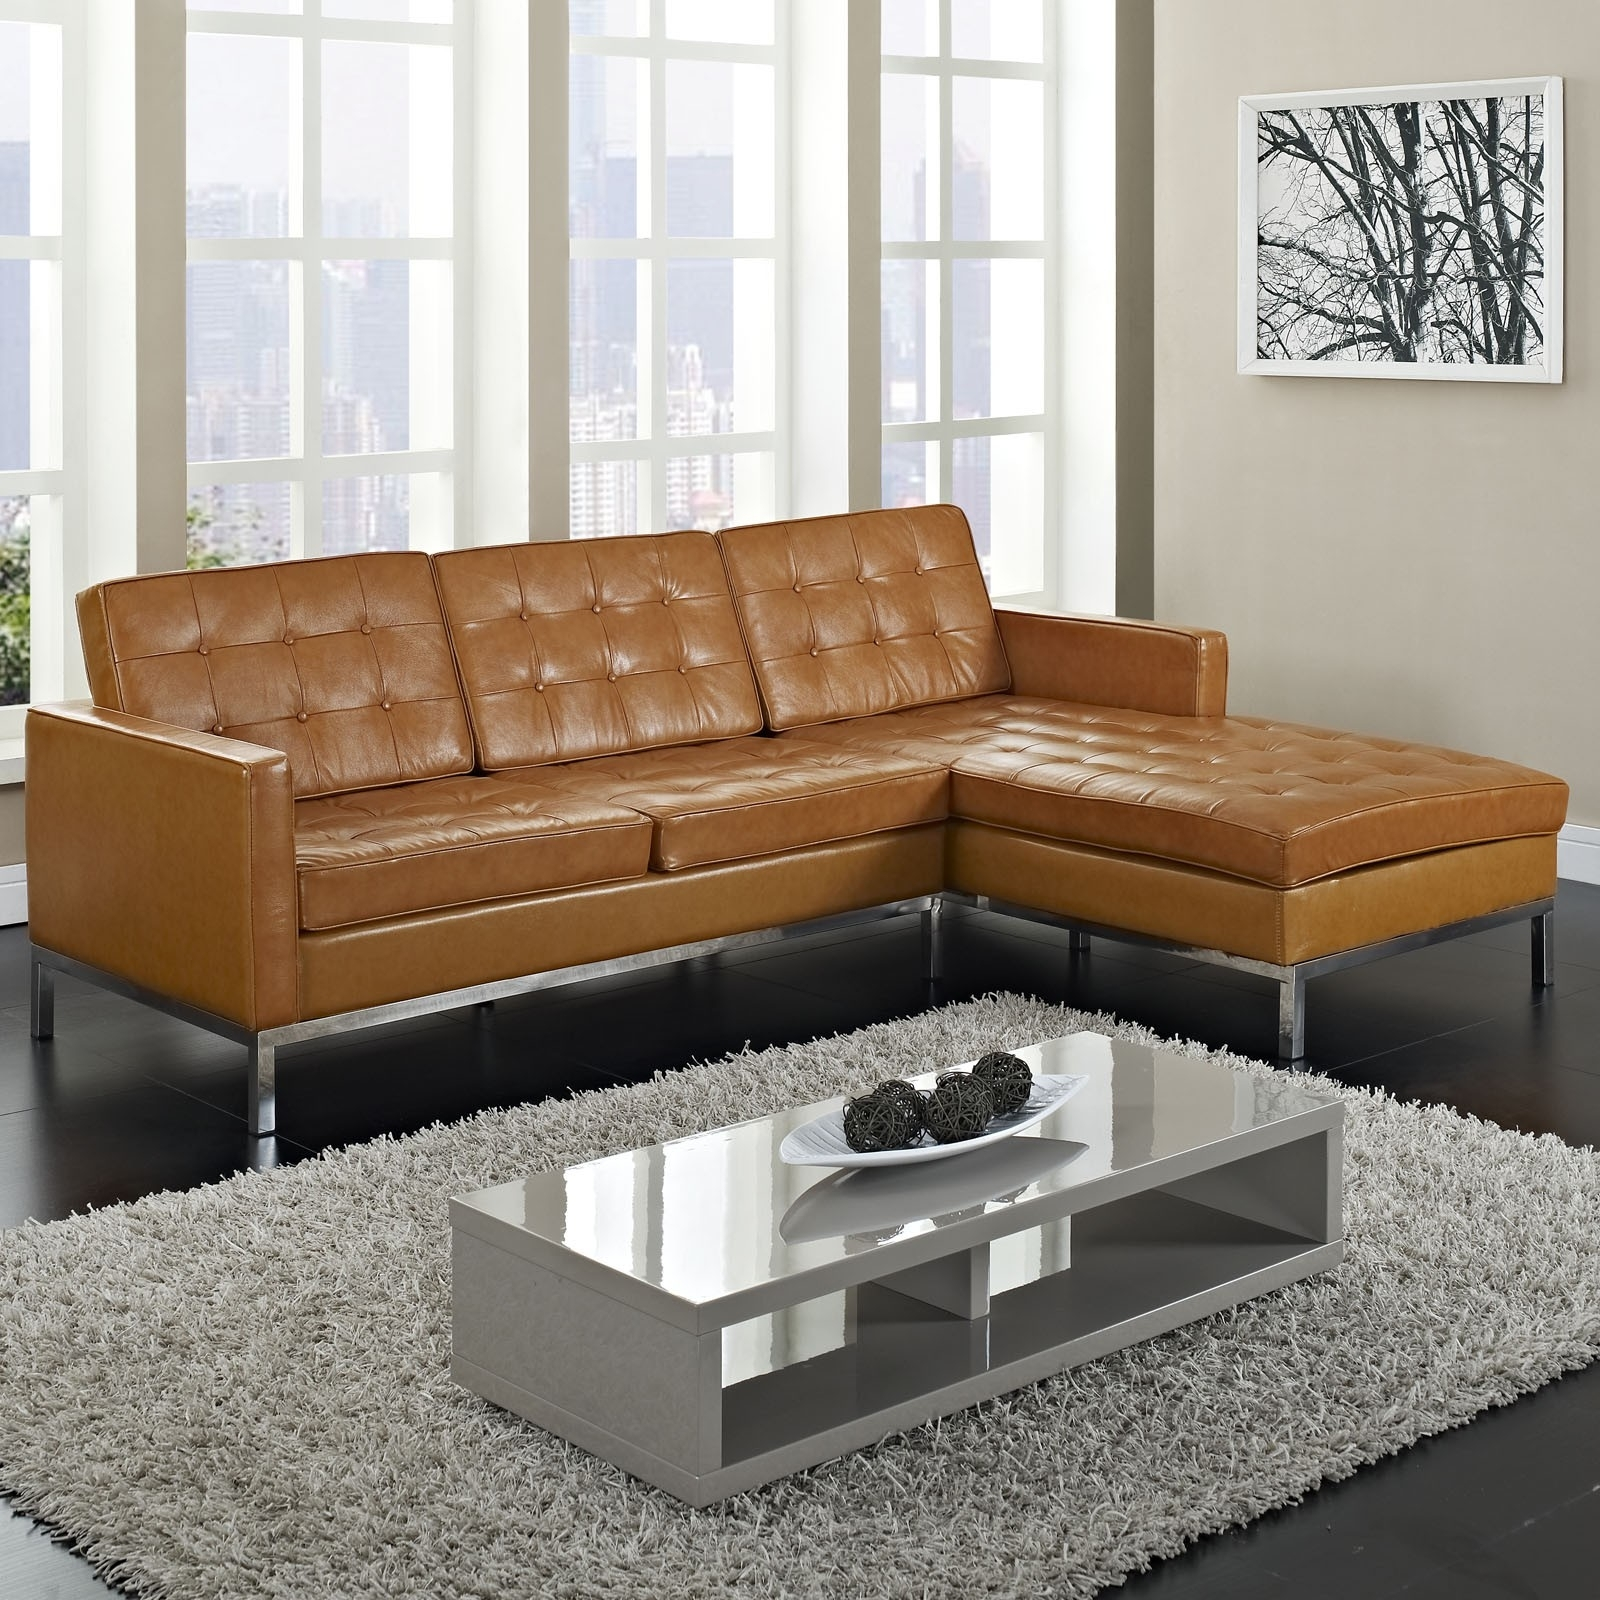 10 Collection of Narrow Spaces Sectional Sofas